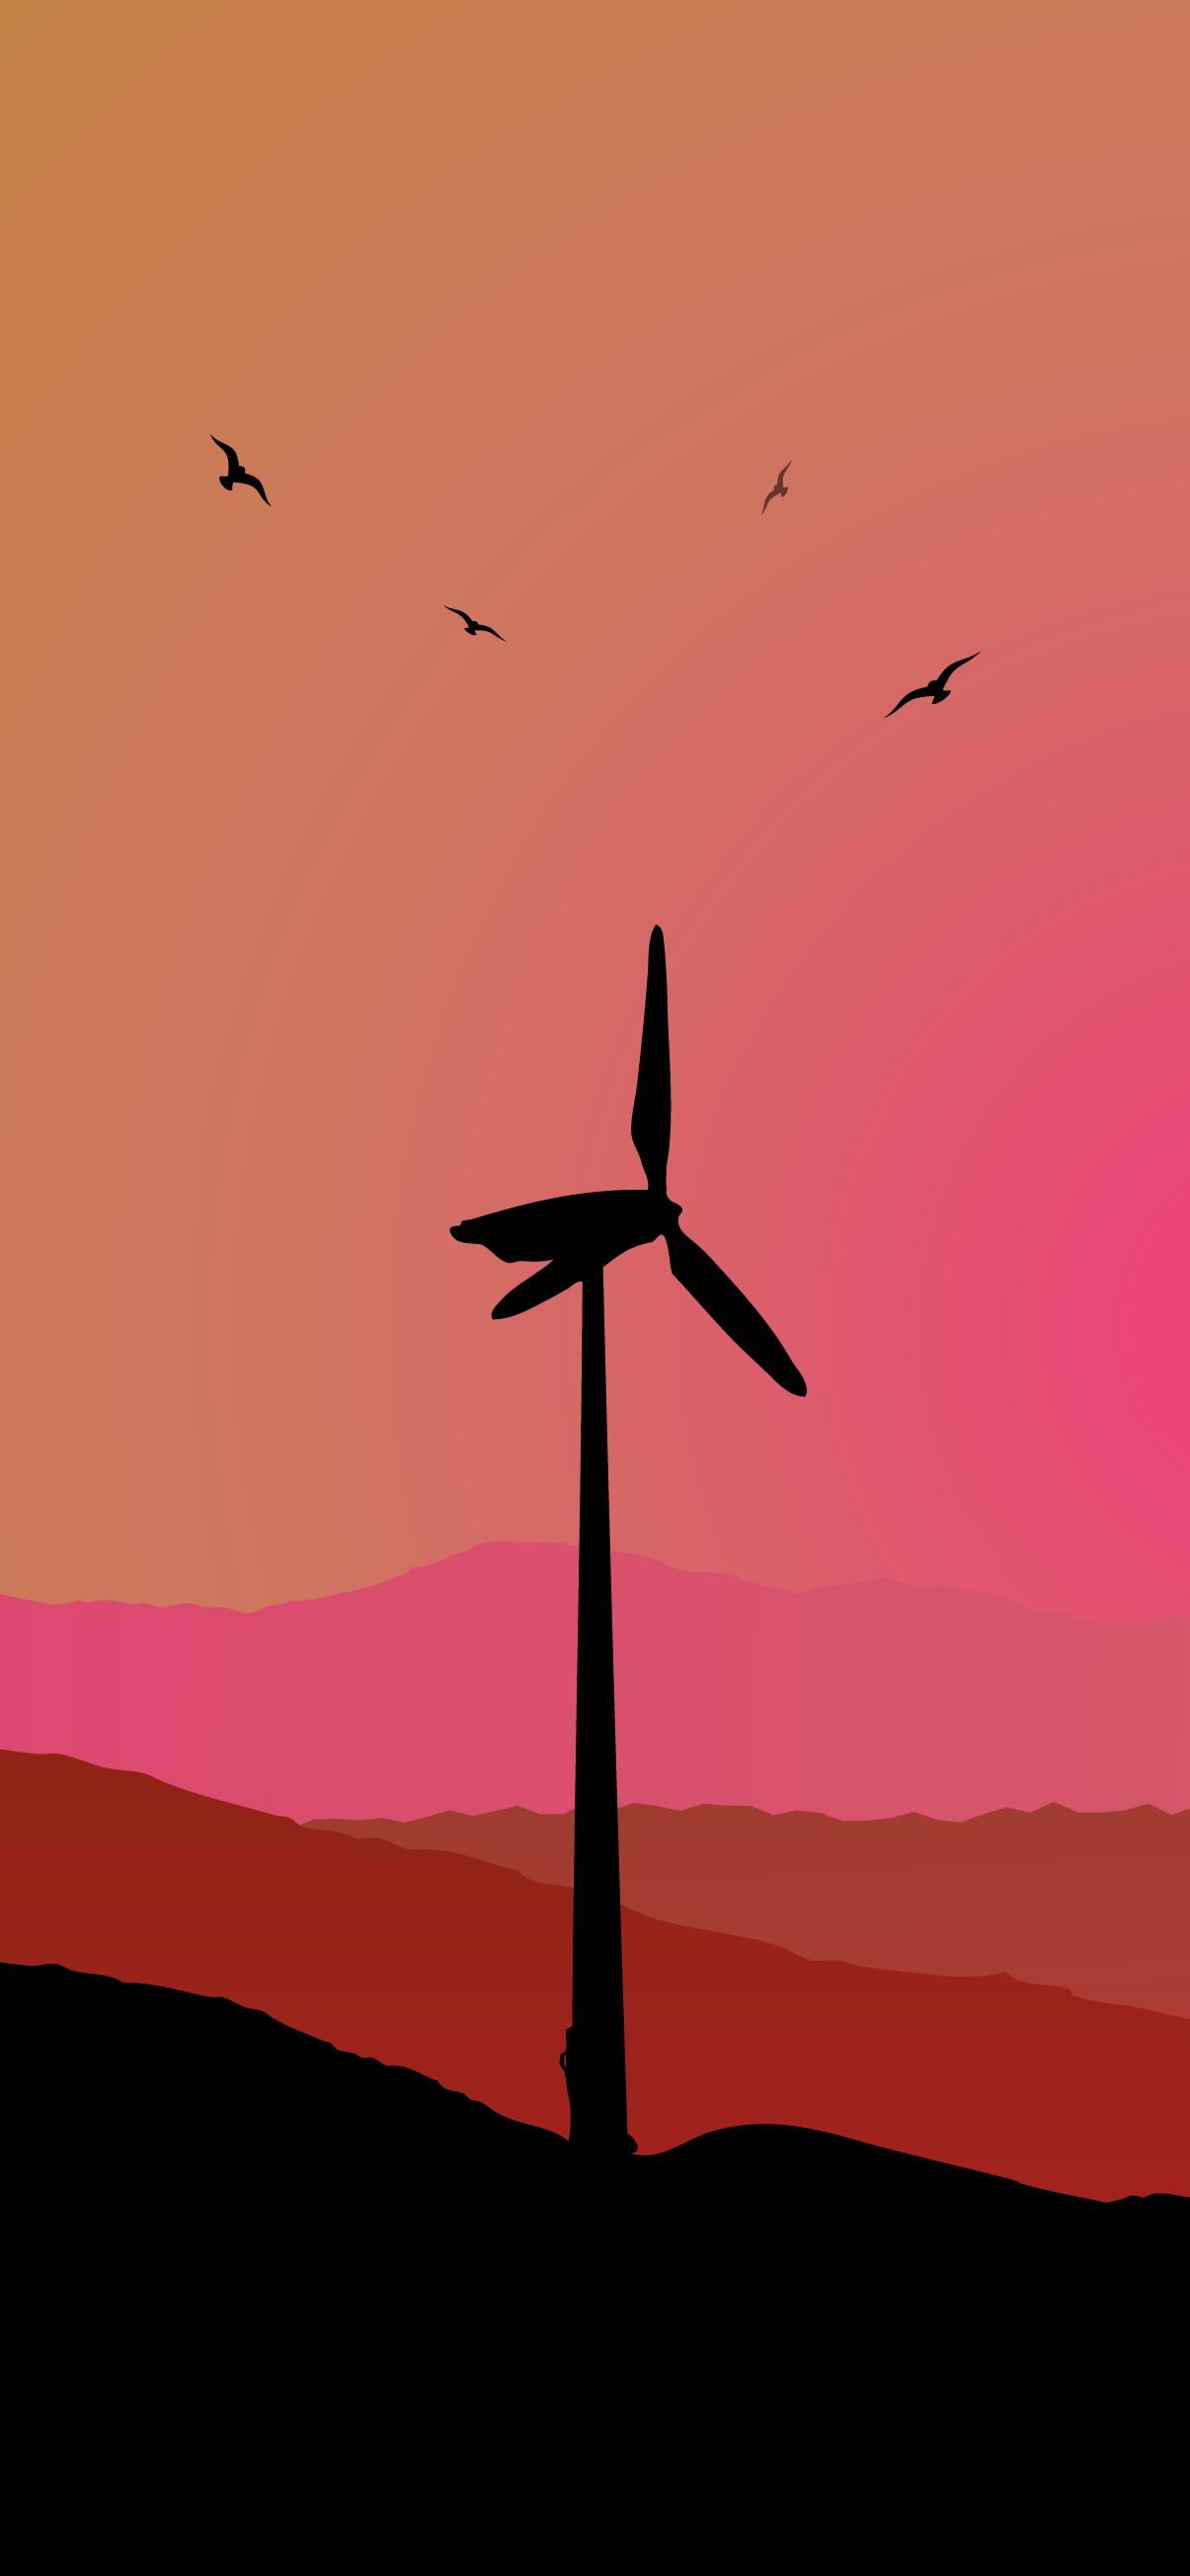 turbine wind phone wallpaper 4k